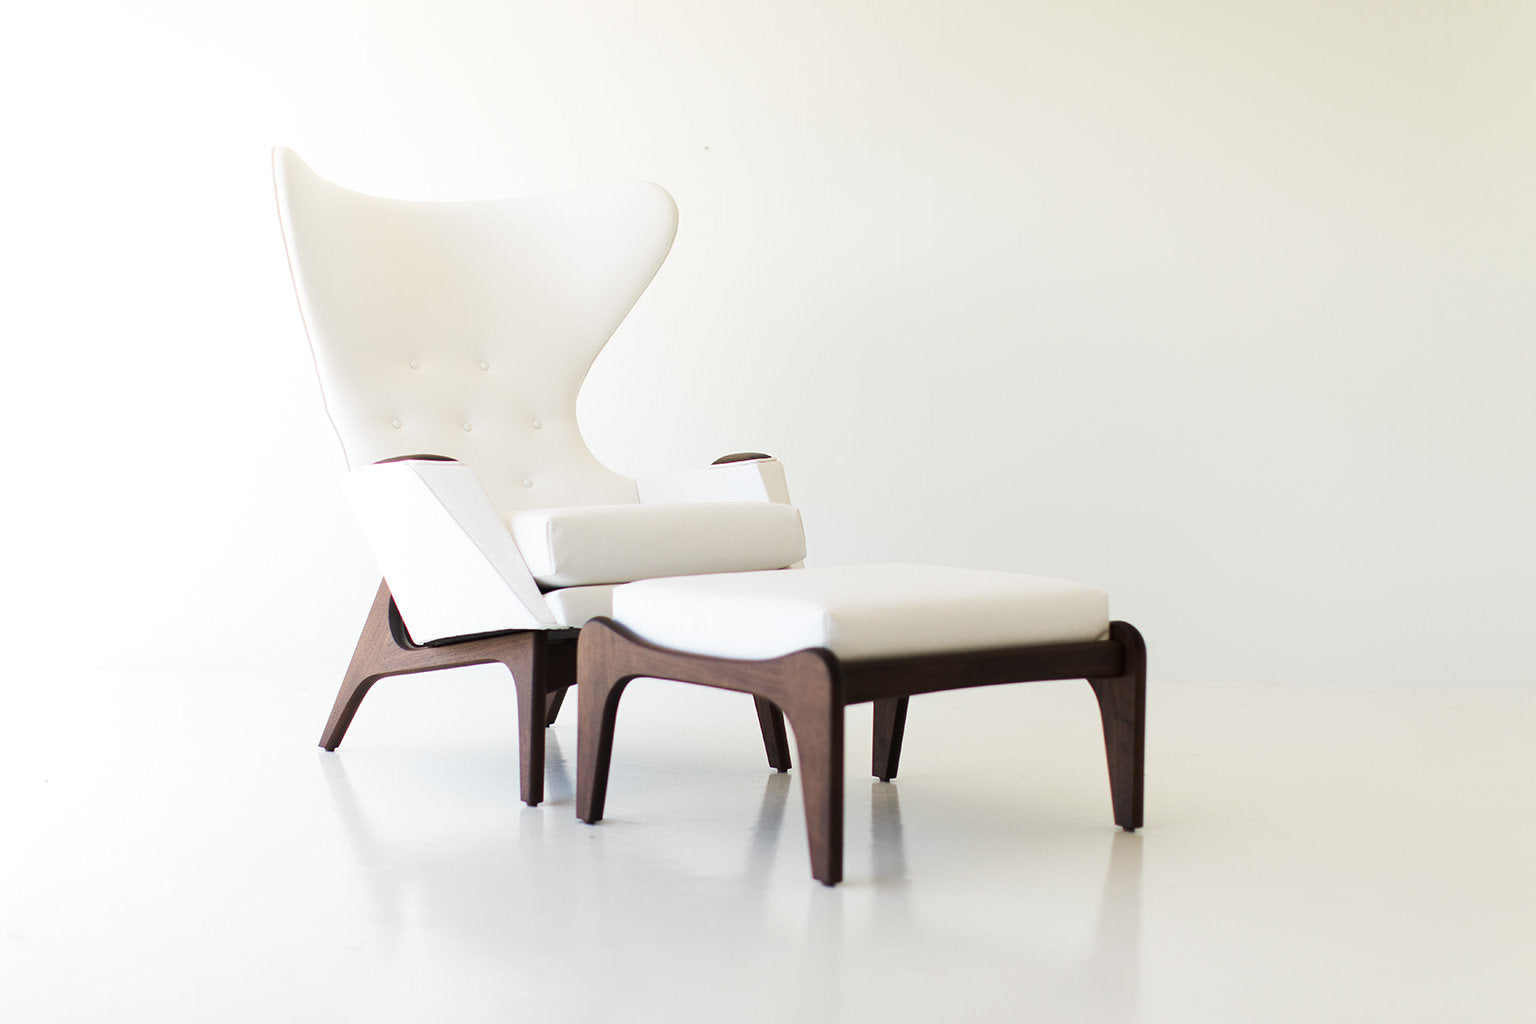 I07A8864-white-chair-and-ottoman-06